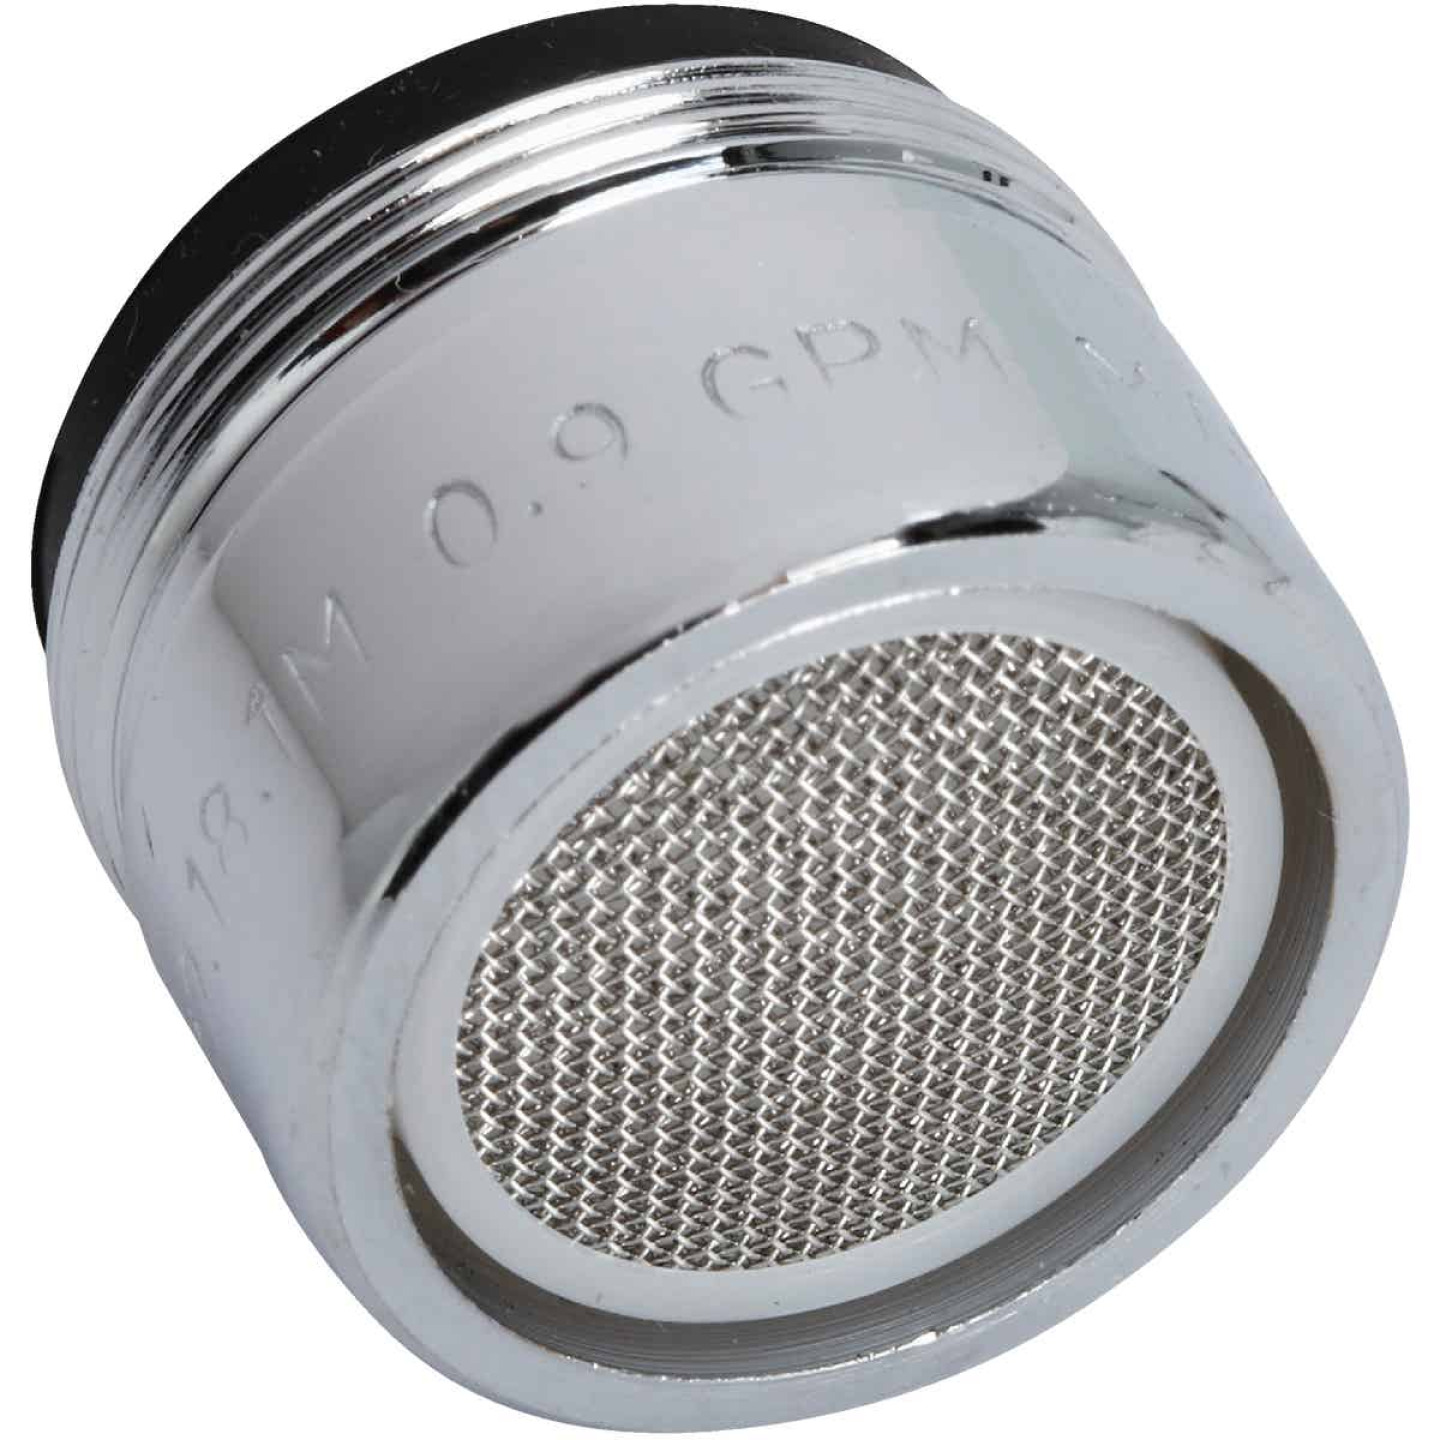 Do it 0.9 GPM Universal Water Saver Faucet Aerator Image 1